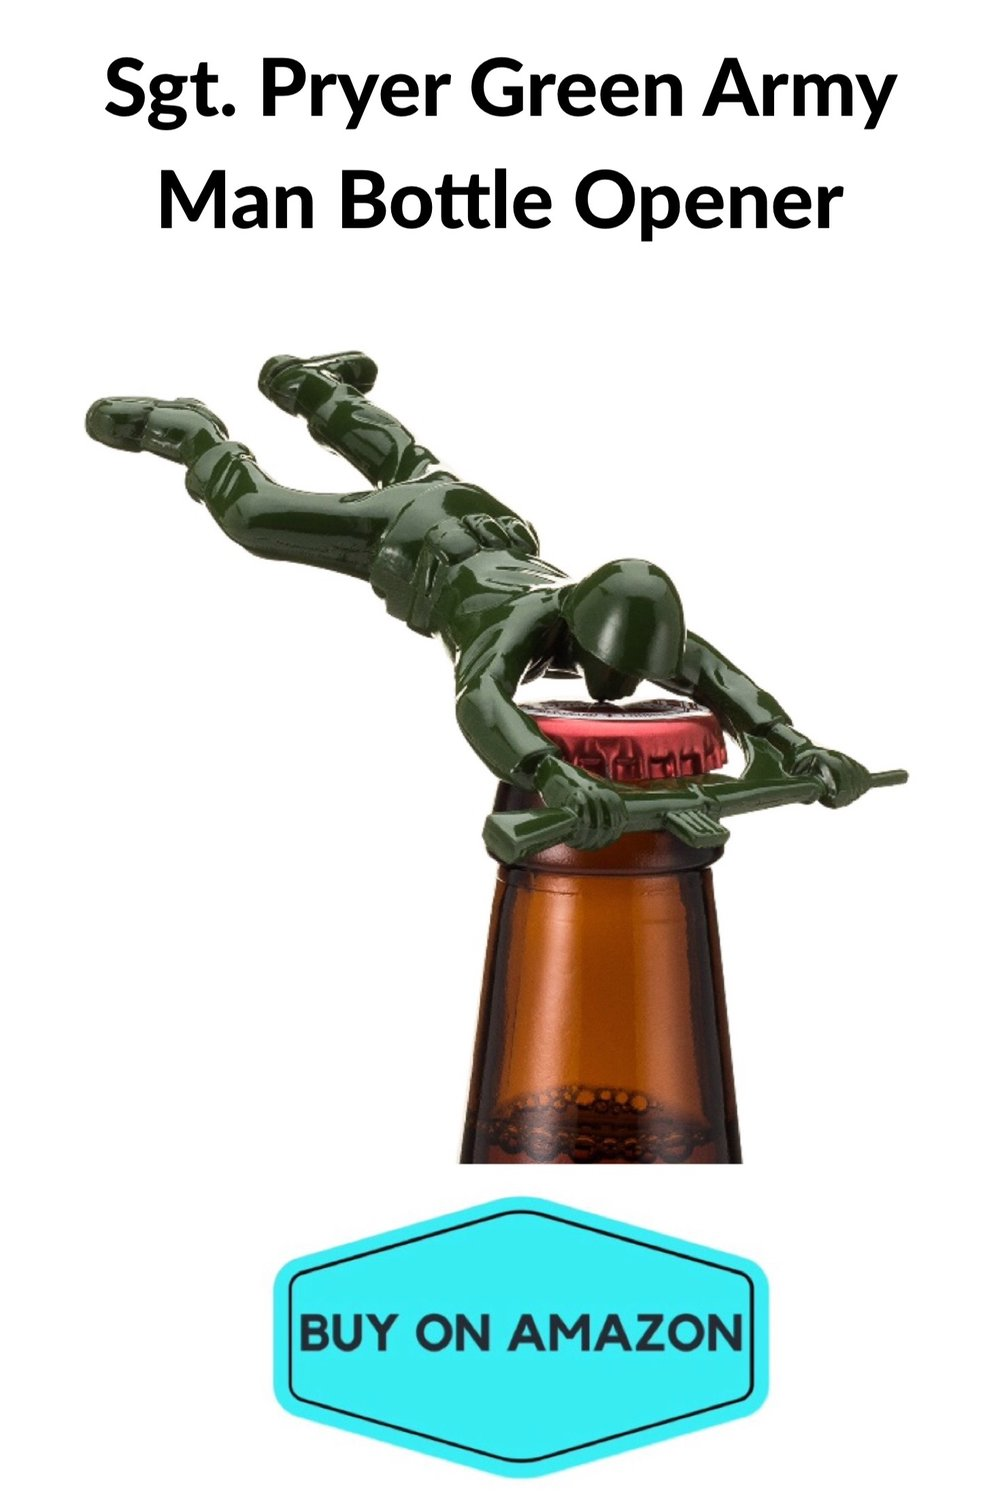 Sgt. Pryor Green Army Man Bottle Opener